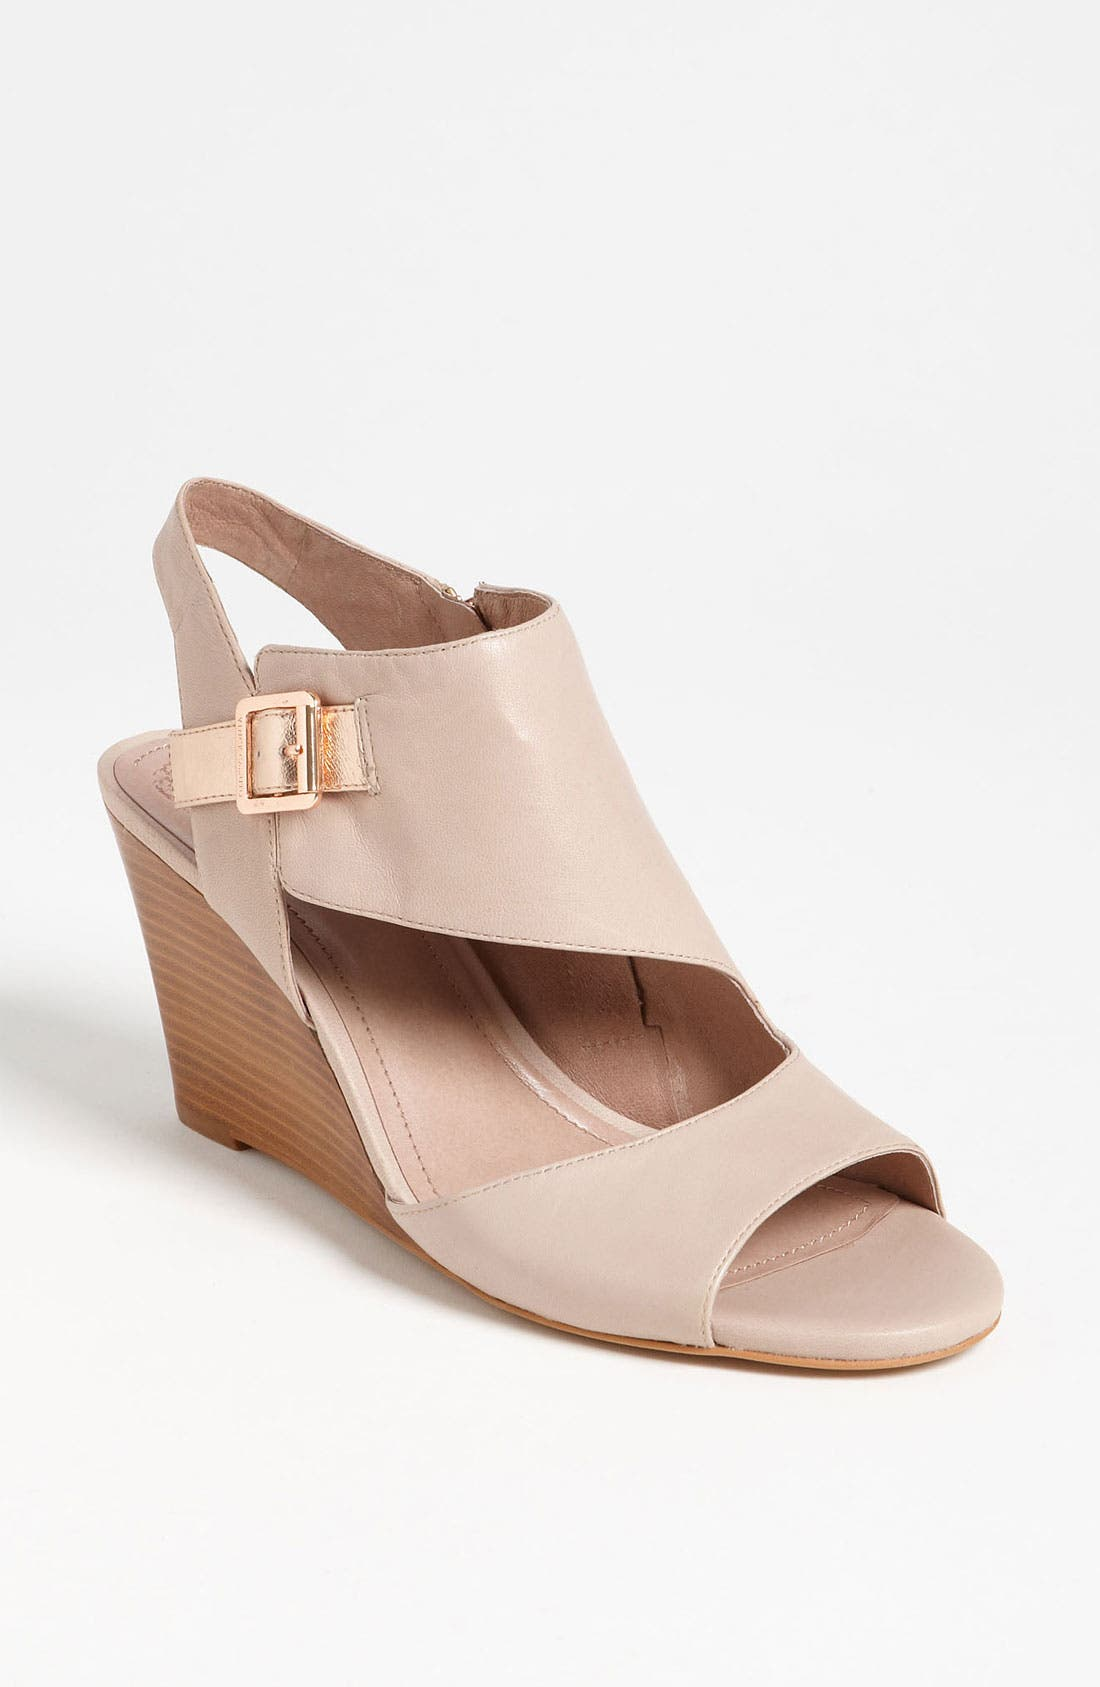 Alternate Image 1 Selected - Vince Camuto 'Hannah' Sandal (Exclusive)